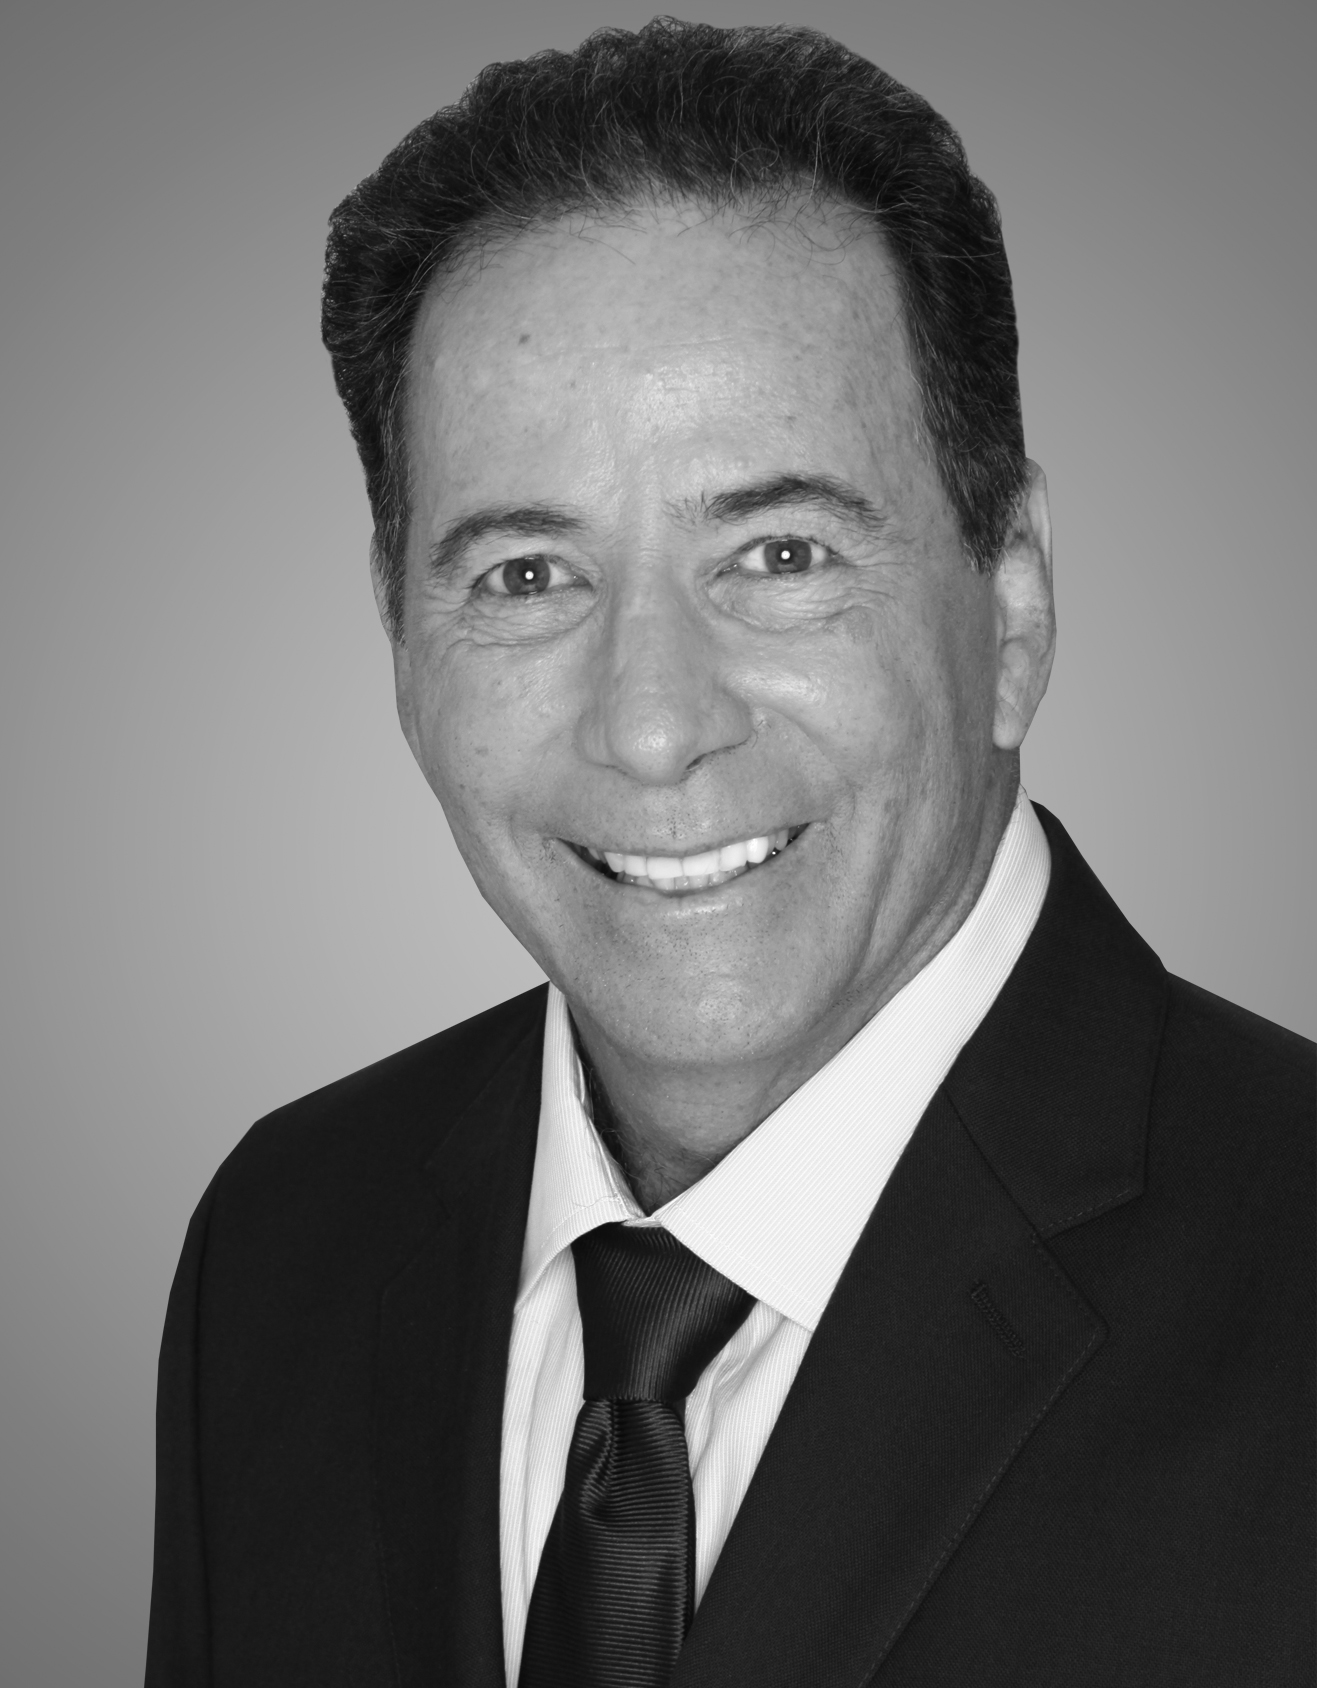 Paul S. Goldkorn